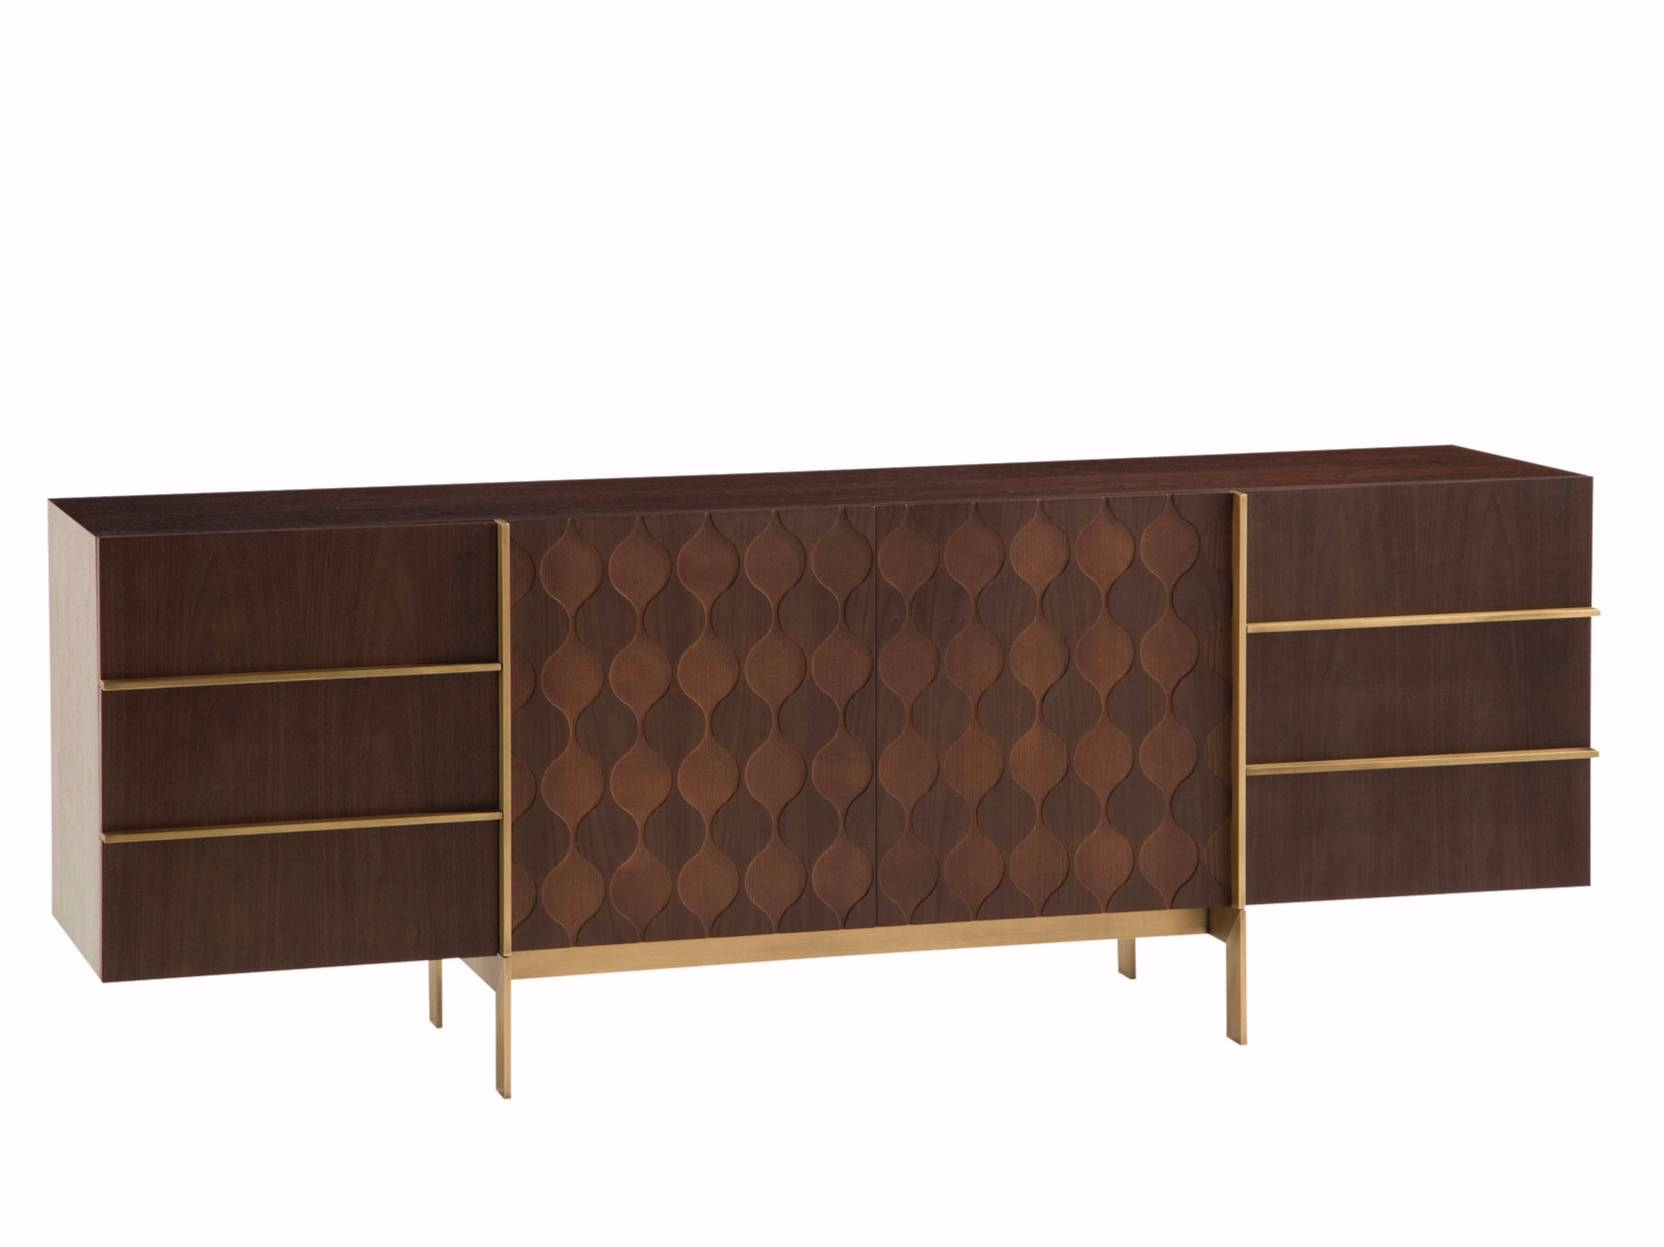 Repertoire | Sideboardroche Bobois pertaining to Roche Bobois Sideboards (Image 6 of 15)